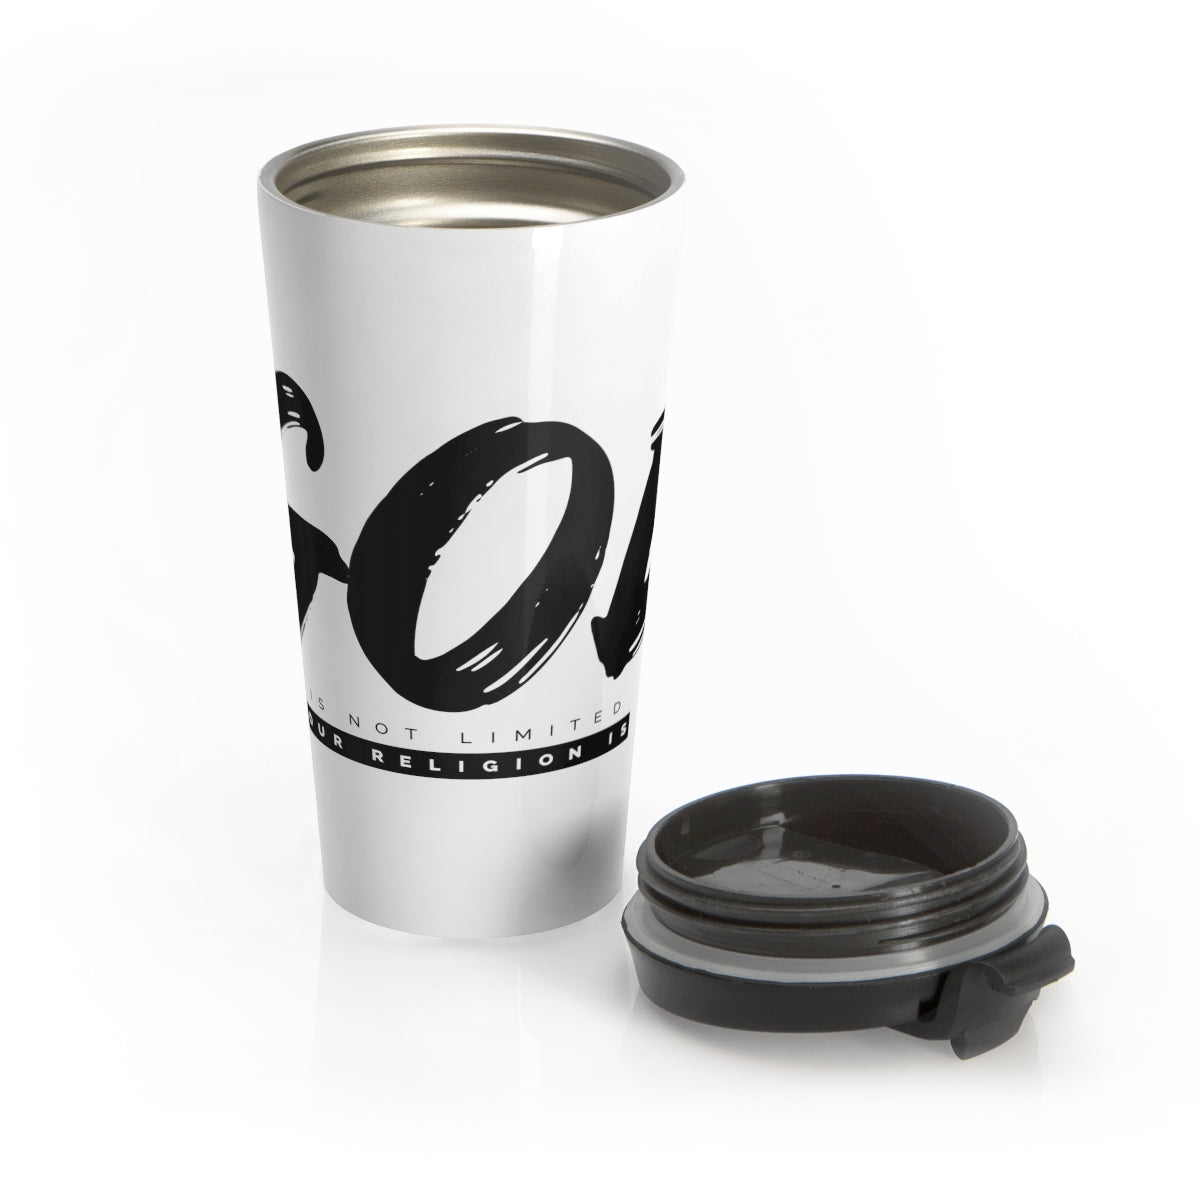 God Is Not Limited Our Religion Is Stainless Steel Travel Mug